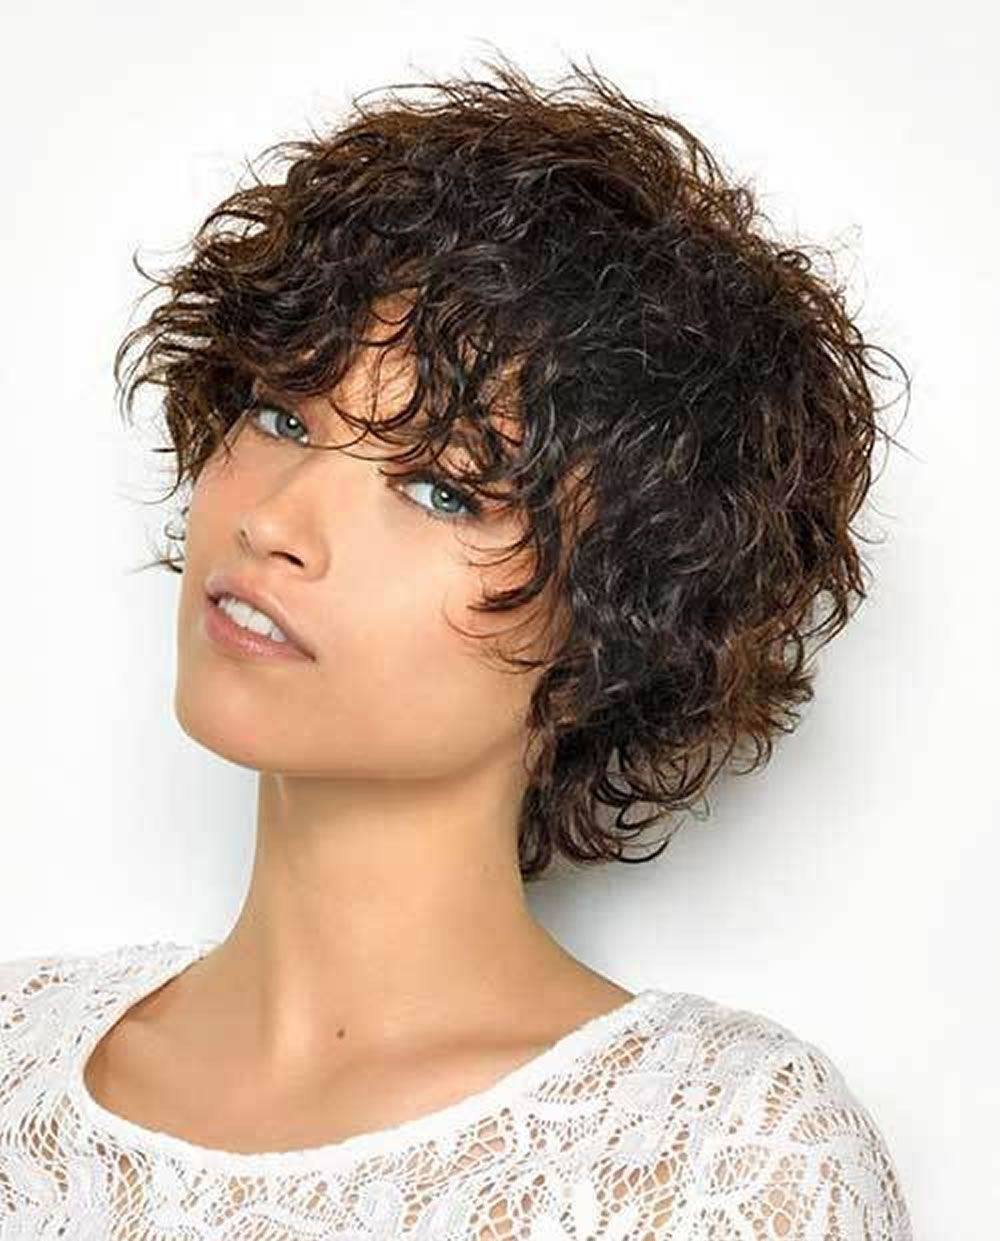 9 Cool Short Hairstyles For Curly Hair For Women With Diamond Face 2019 Curly Hair Short Curly Hairstyles For Women Curly Hair Styles Haircuts For Curly Hair